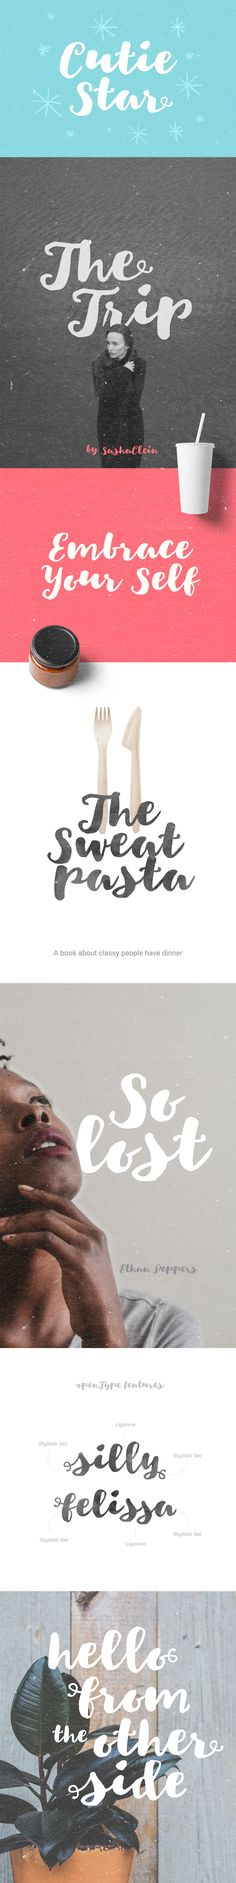 This free font could be great for wedding invitation, greeting card, poster, quote, book cover, t-shirt design, and everything you may think it fits. Free to use for both personal and commercial projects.